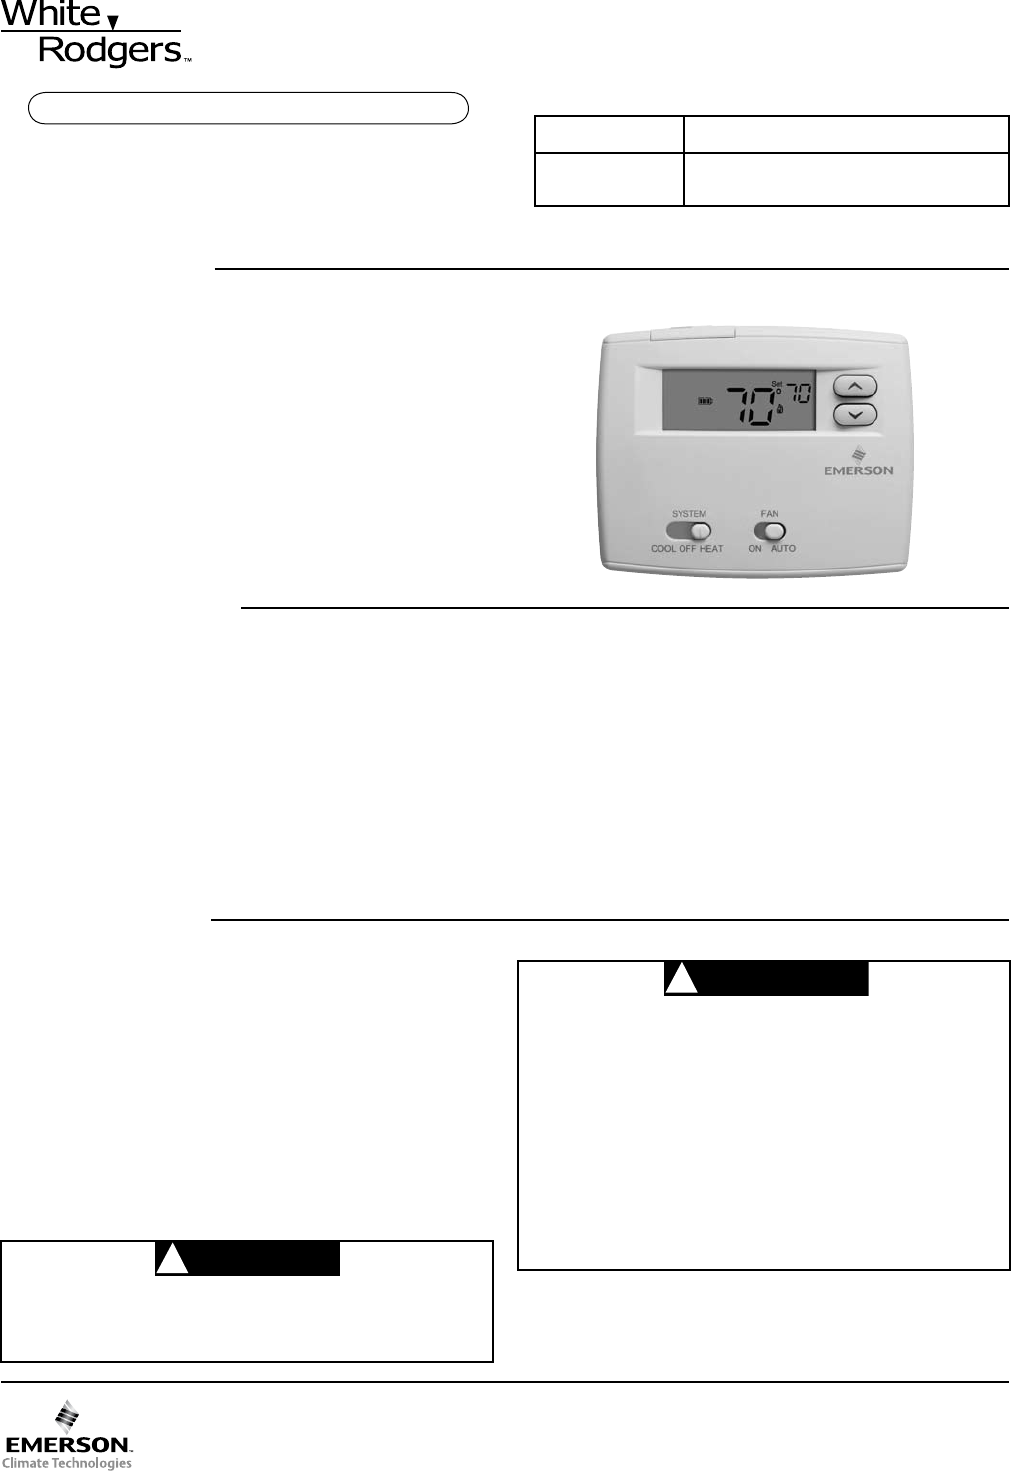 White Rodgers Thermostat 1F86-0244 User Guide | ManualsOnline.com